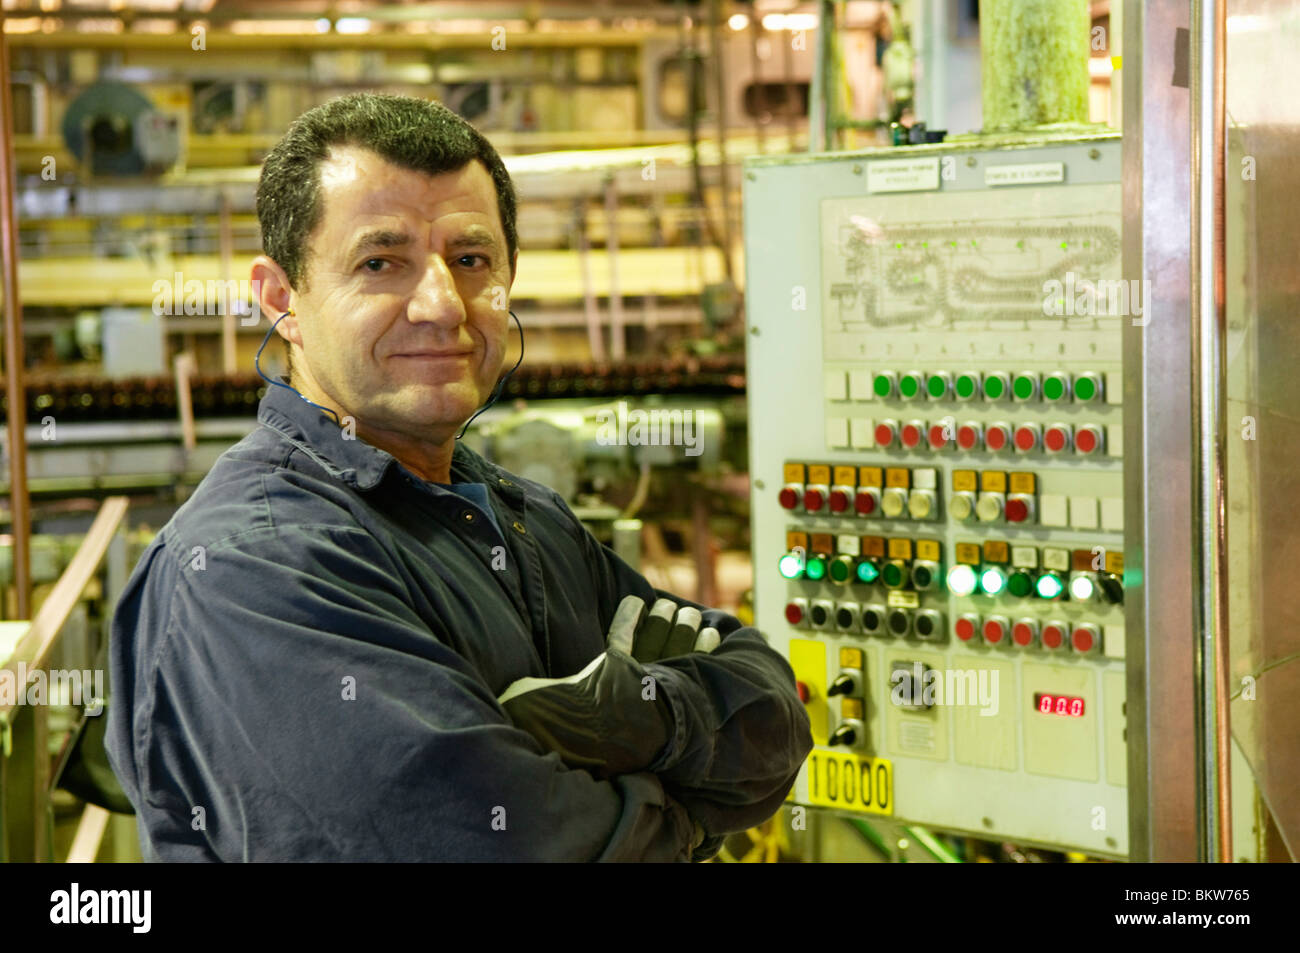 Man standing by control panel - Stock Image